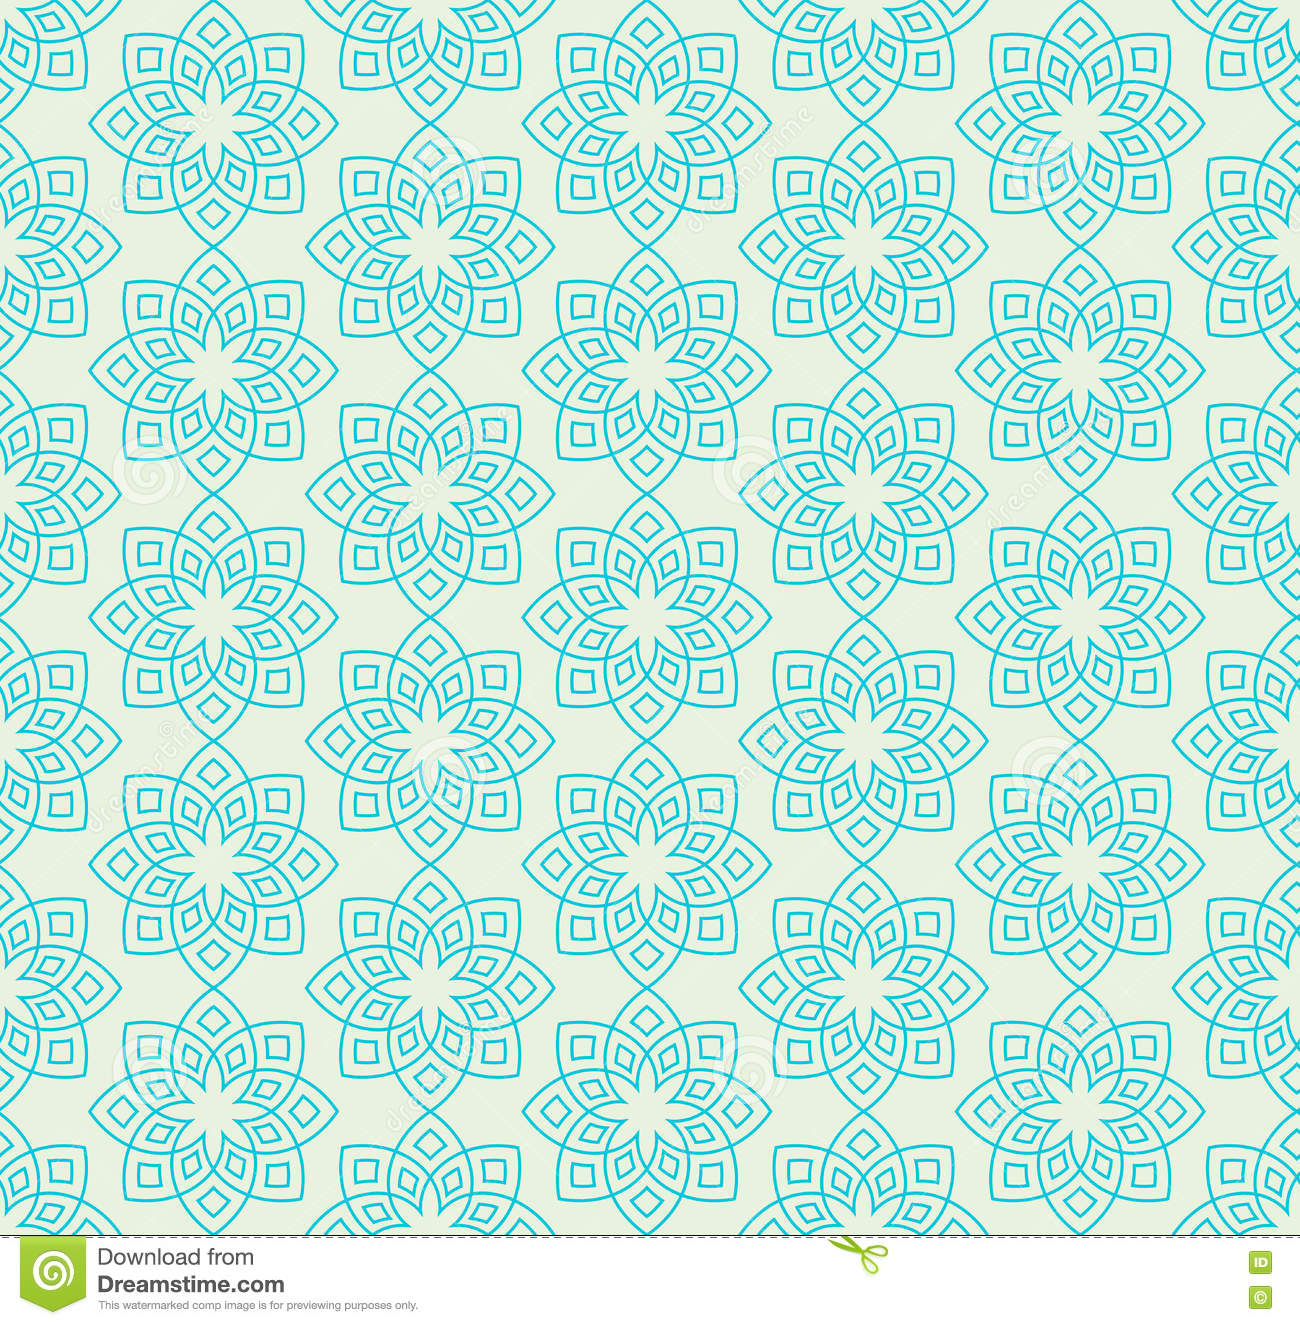 floral pattern in mint green colors